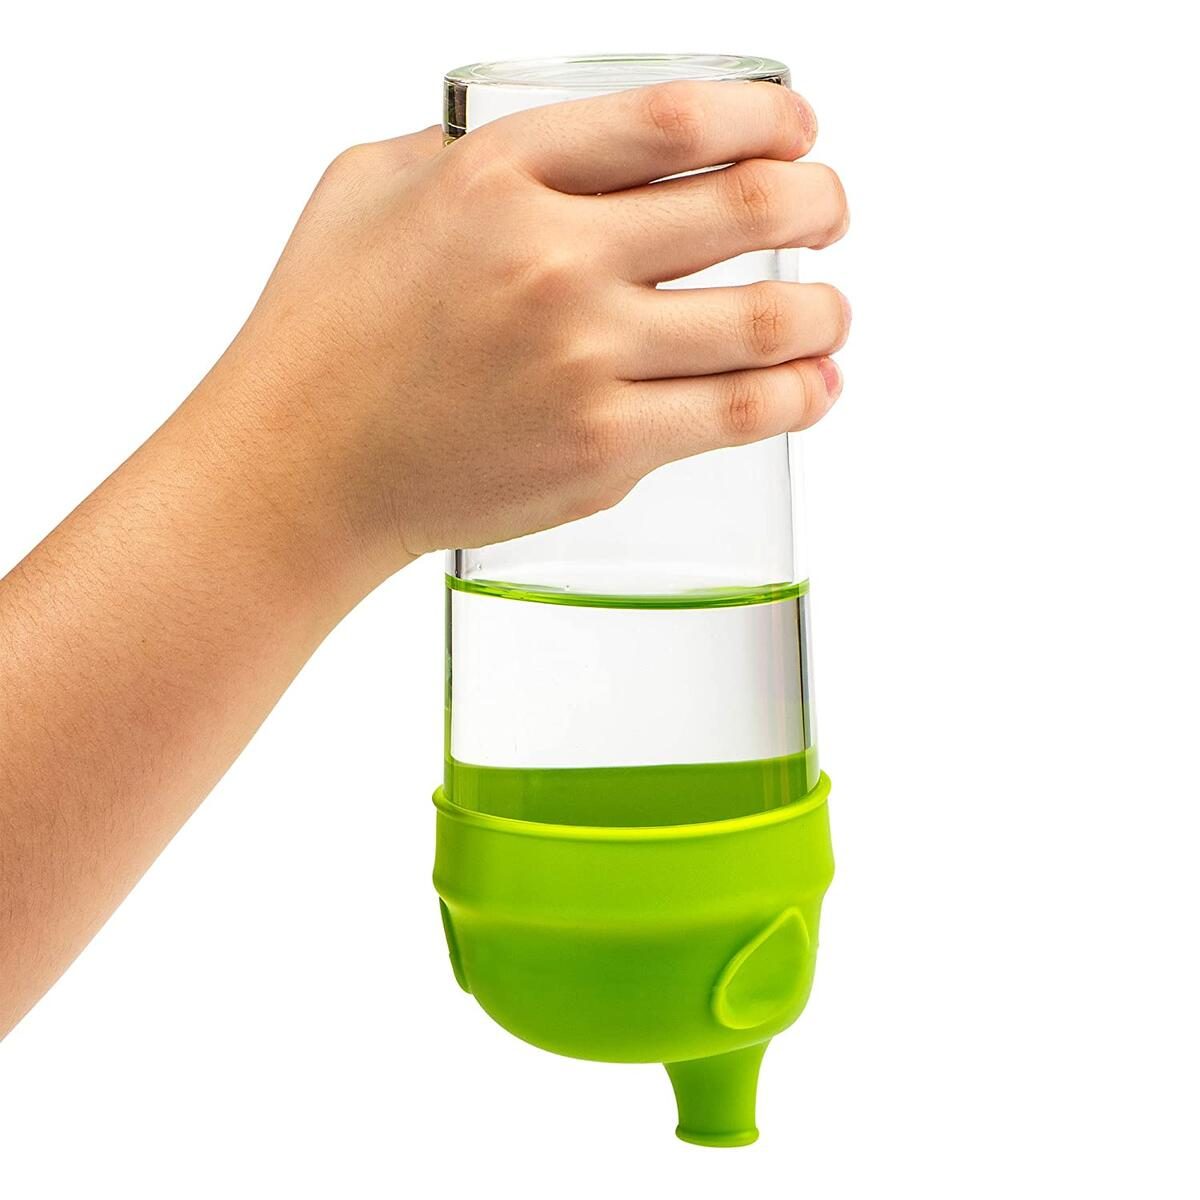 Silicone Sippy Cup Lids, Super Durable, Spill and Leak Proof with Soft Spout Perfect for Babies, Toddlers and Kids to Use, Universal Fit, 100% Food Safe, BPA-free, Phthalate free and Dishwasher Safe